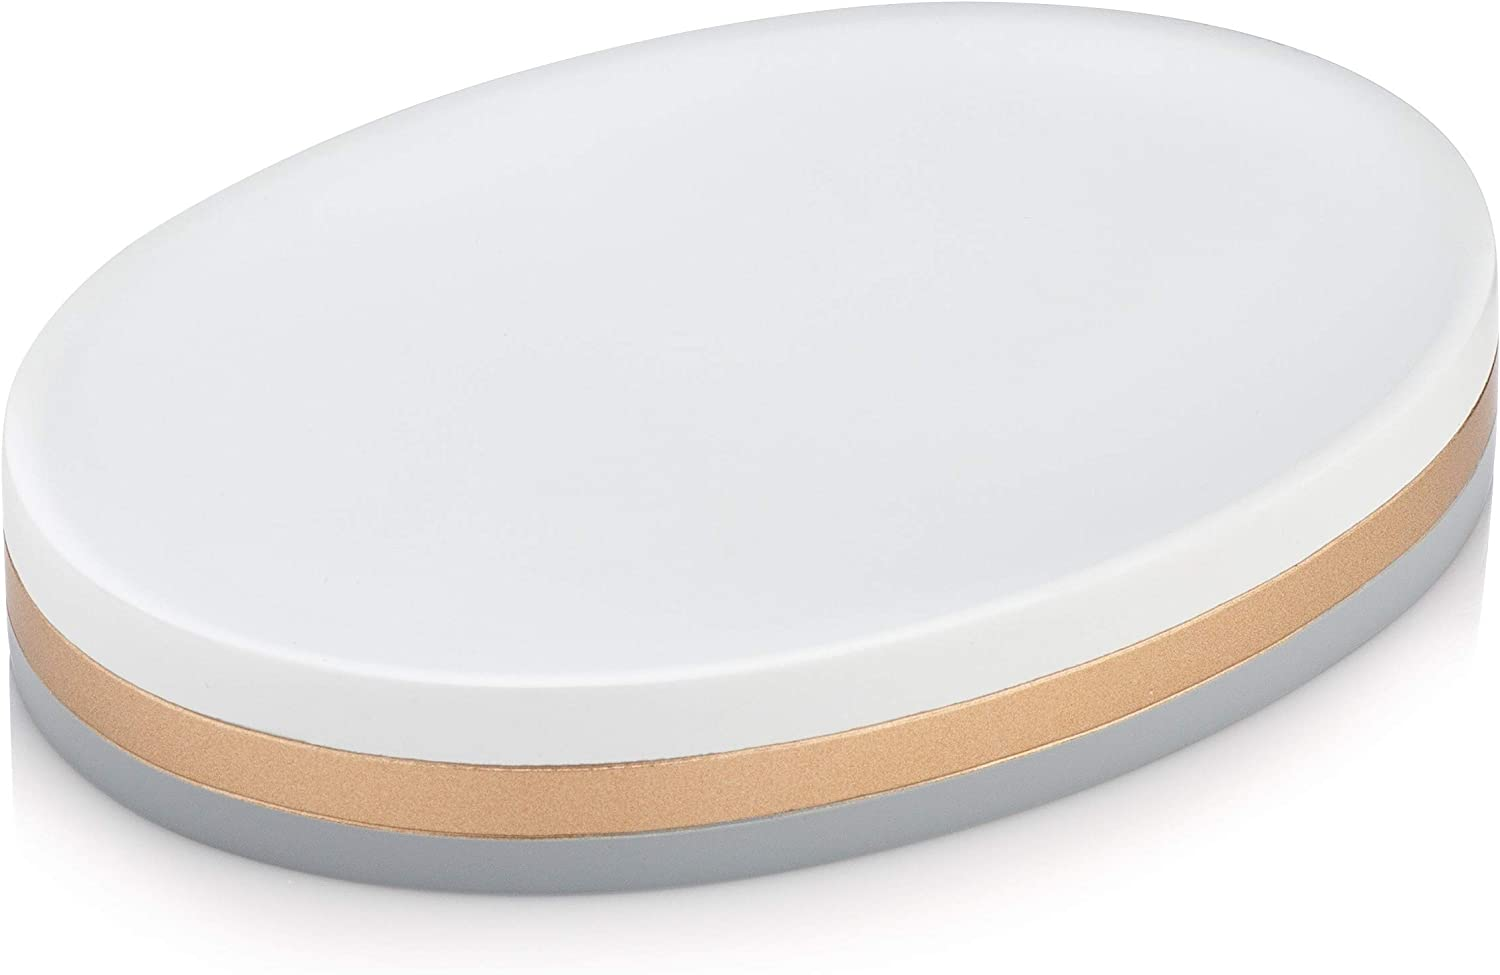 Essentra Home Day and Night Collection White and Grey with Gold Stripe Soap Dish Holder for Bathroom Sink or Shower Also Great for Kitchen